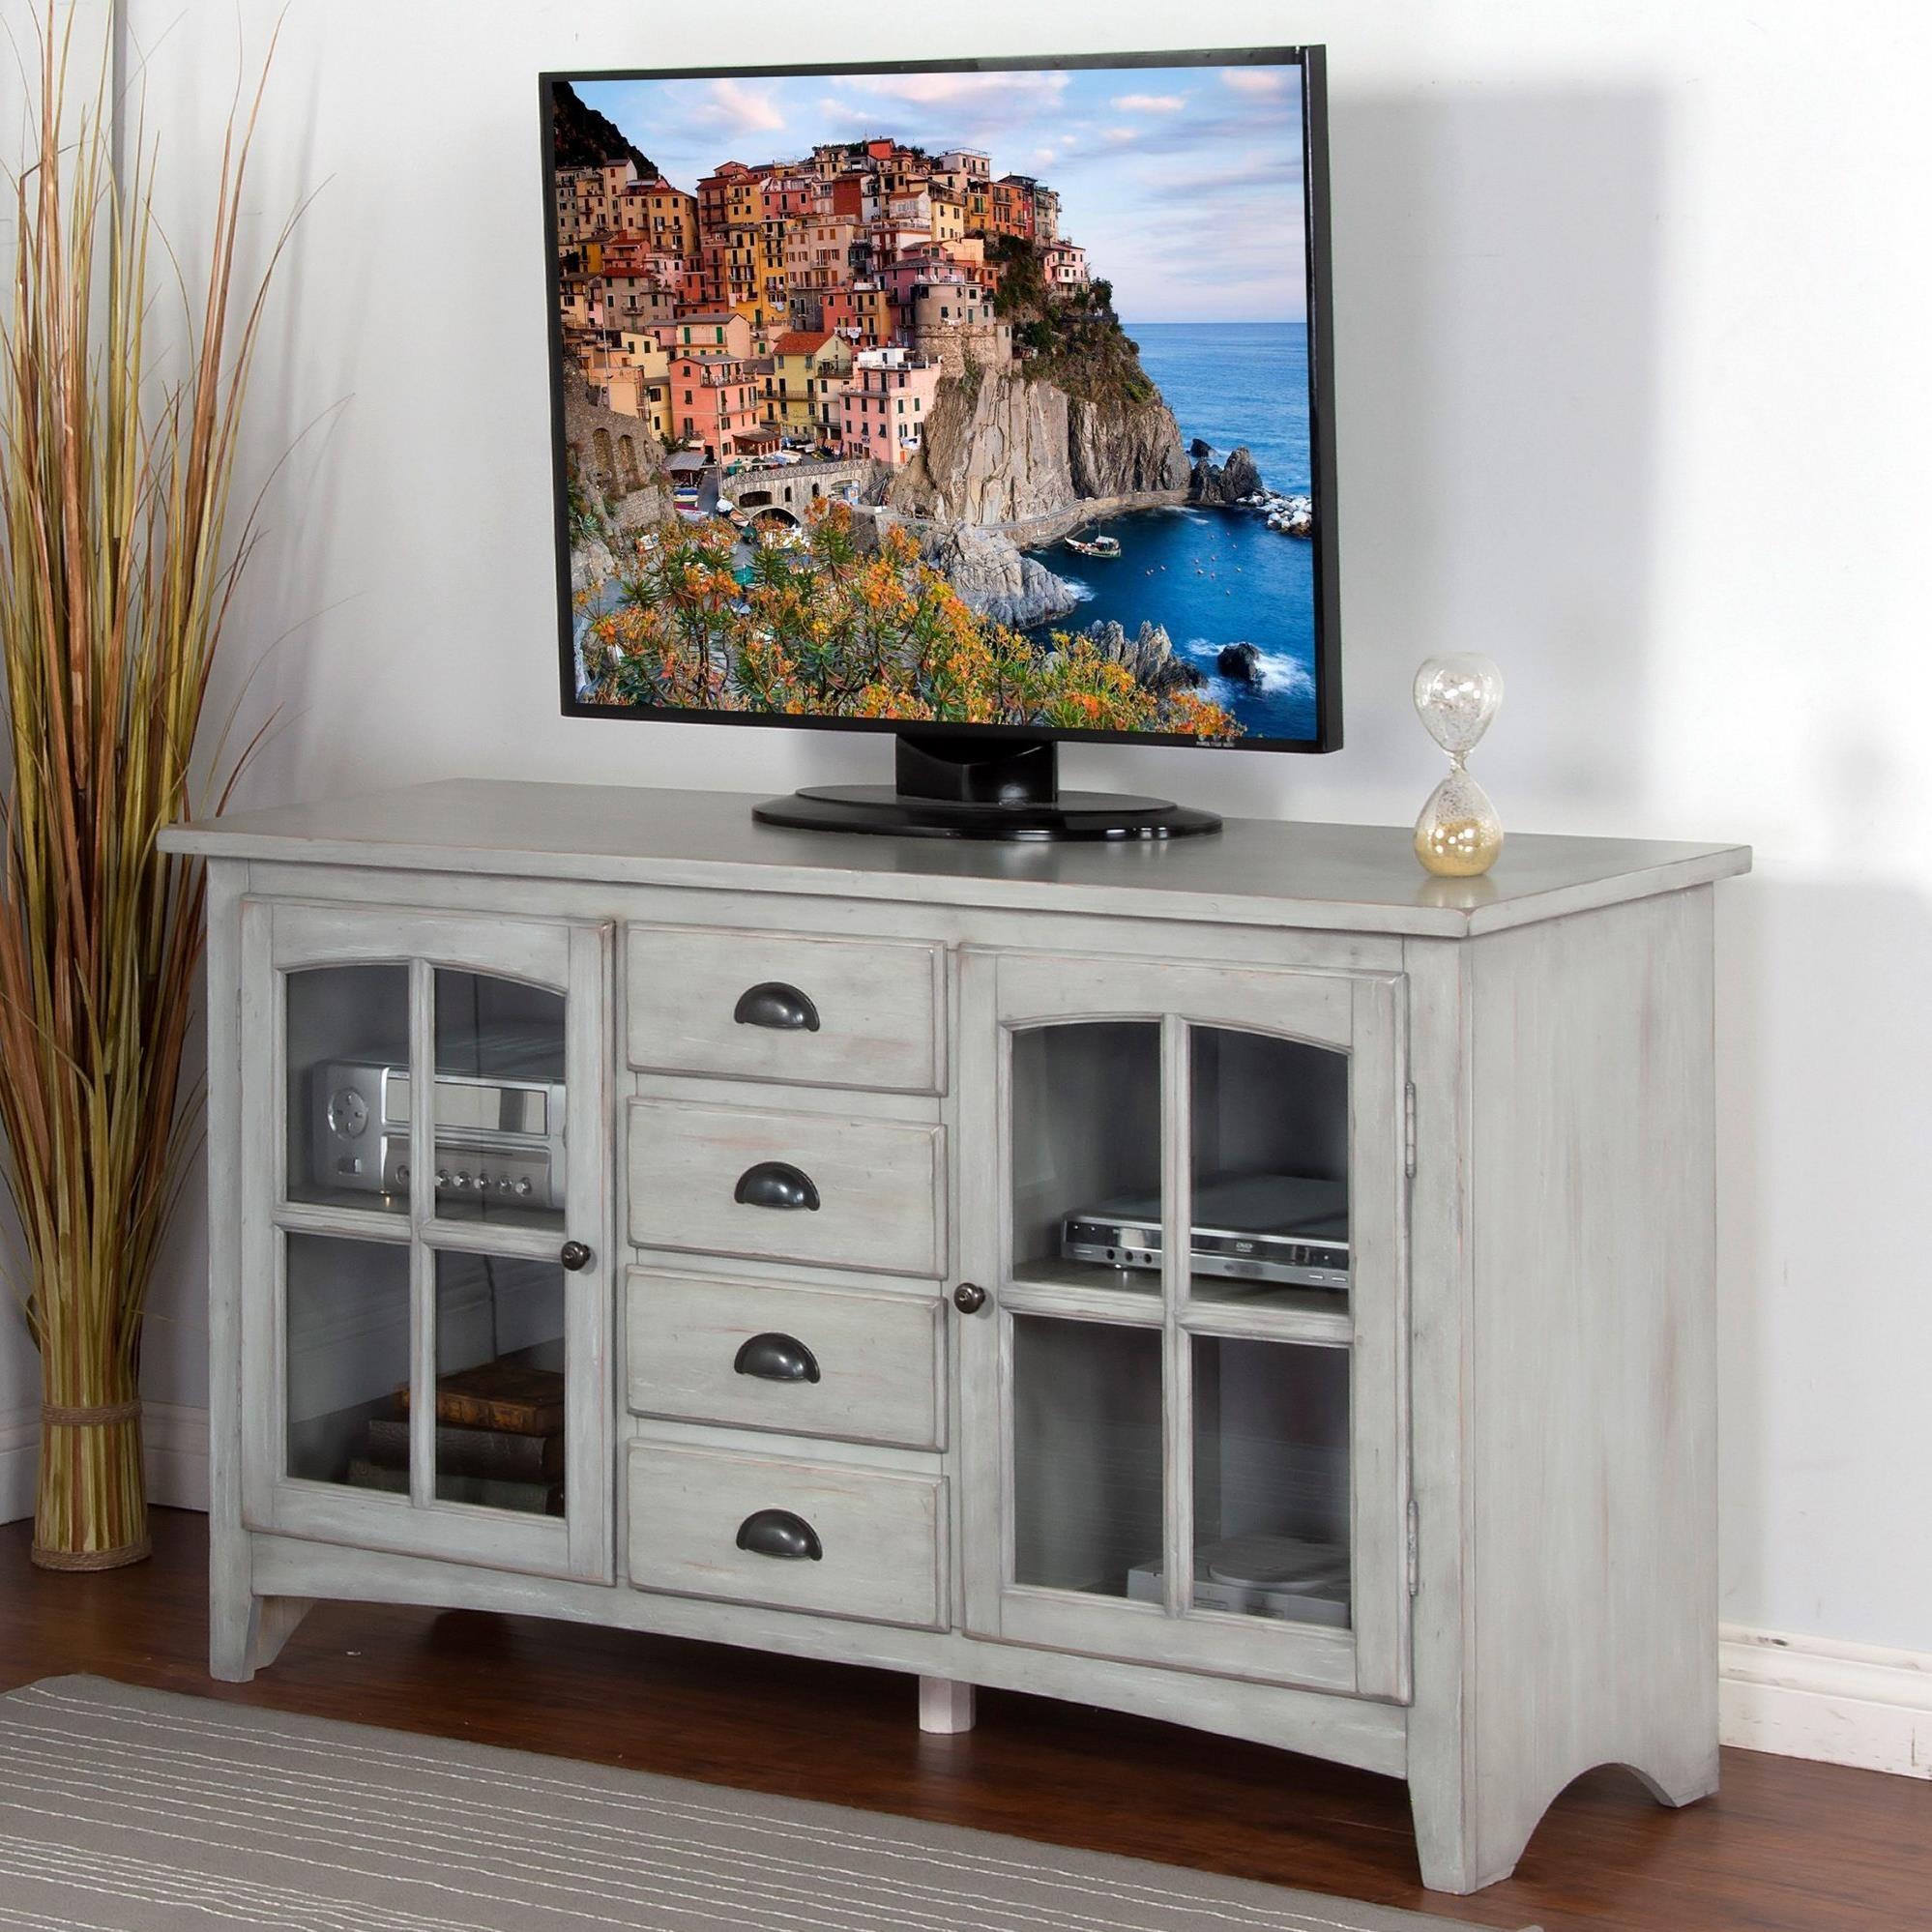 "Sunny Designs Elements 64"" TV Console - Item Number: 3562GY-64"